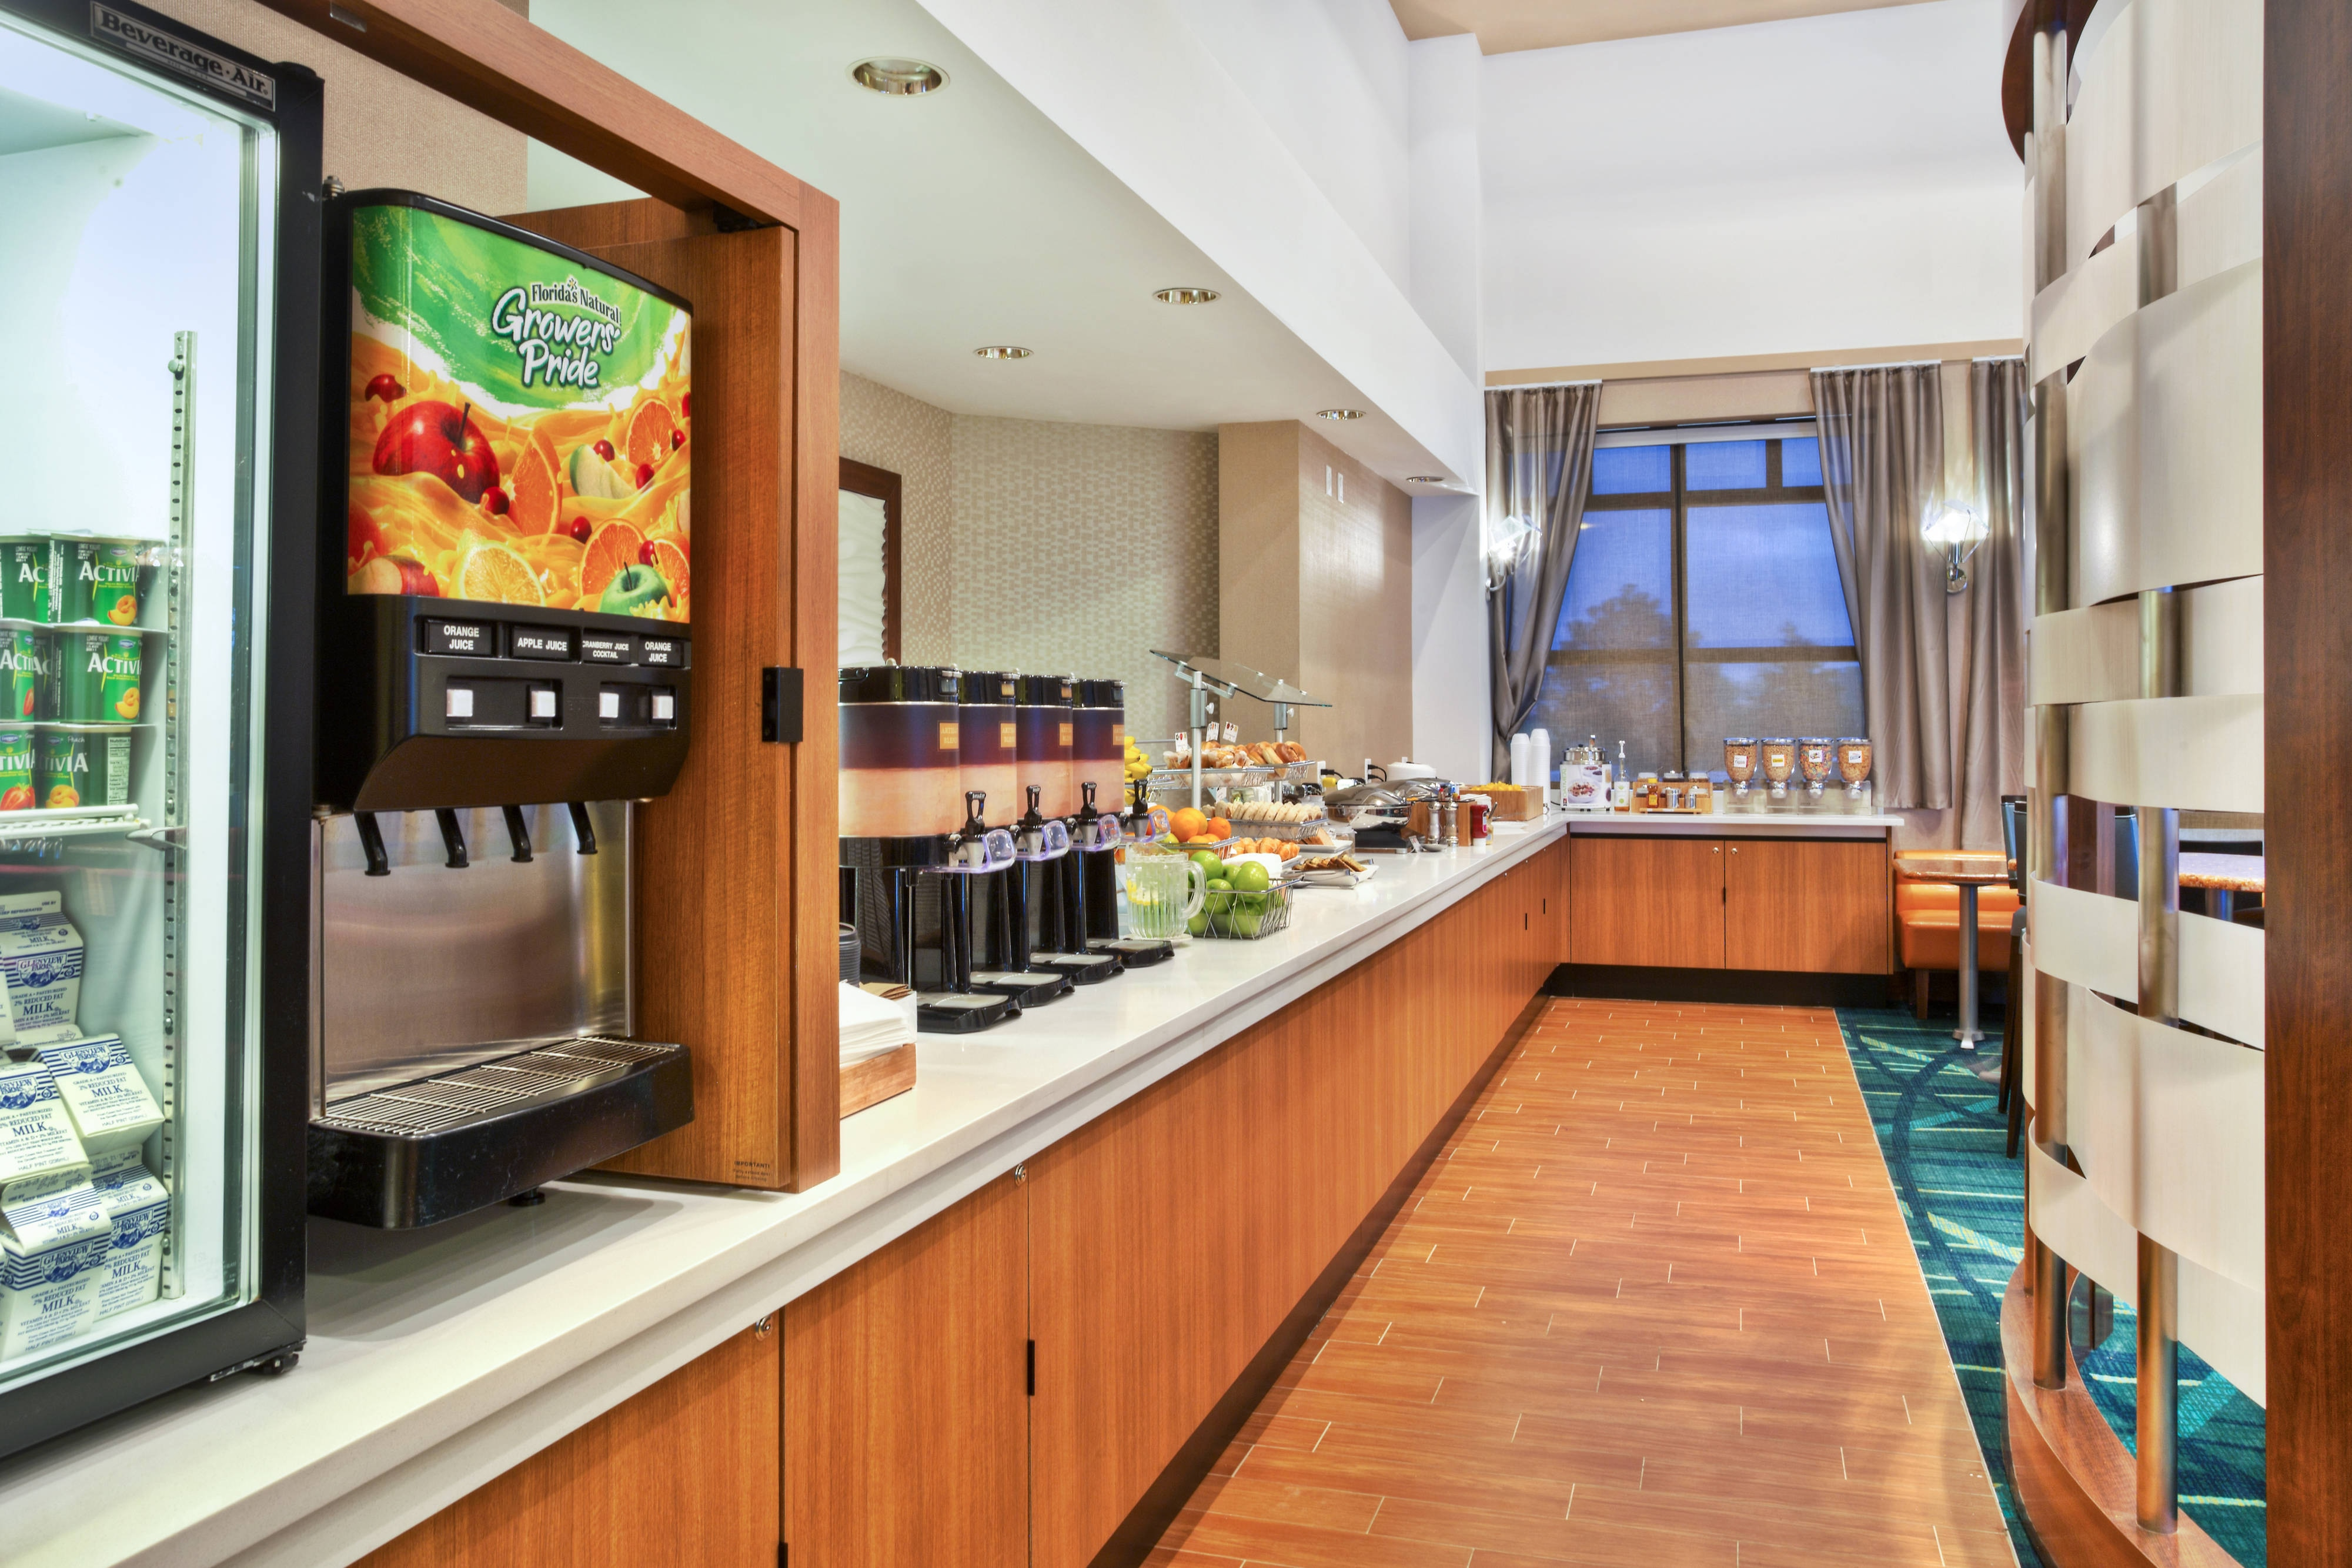 SpringHill Suites Chicago Southwest at Burr Ridge/Hinsdale Breakfast Buffet